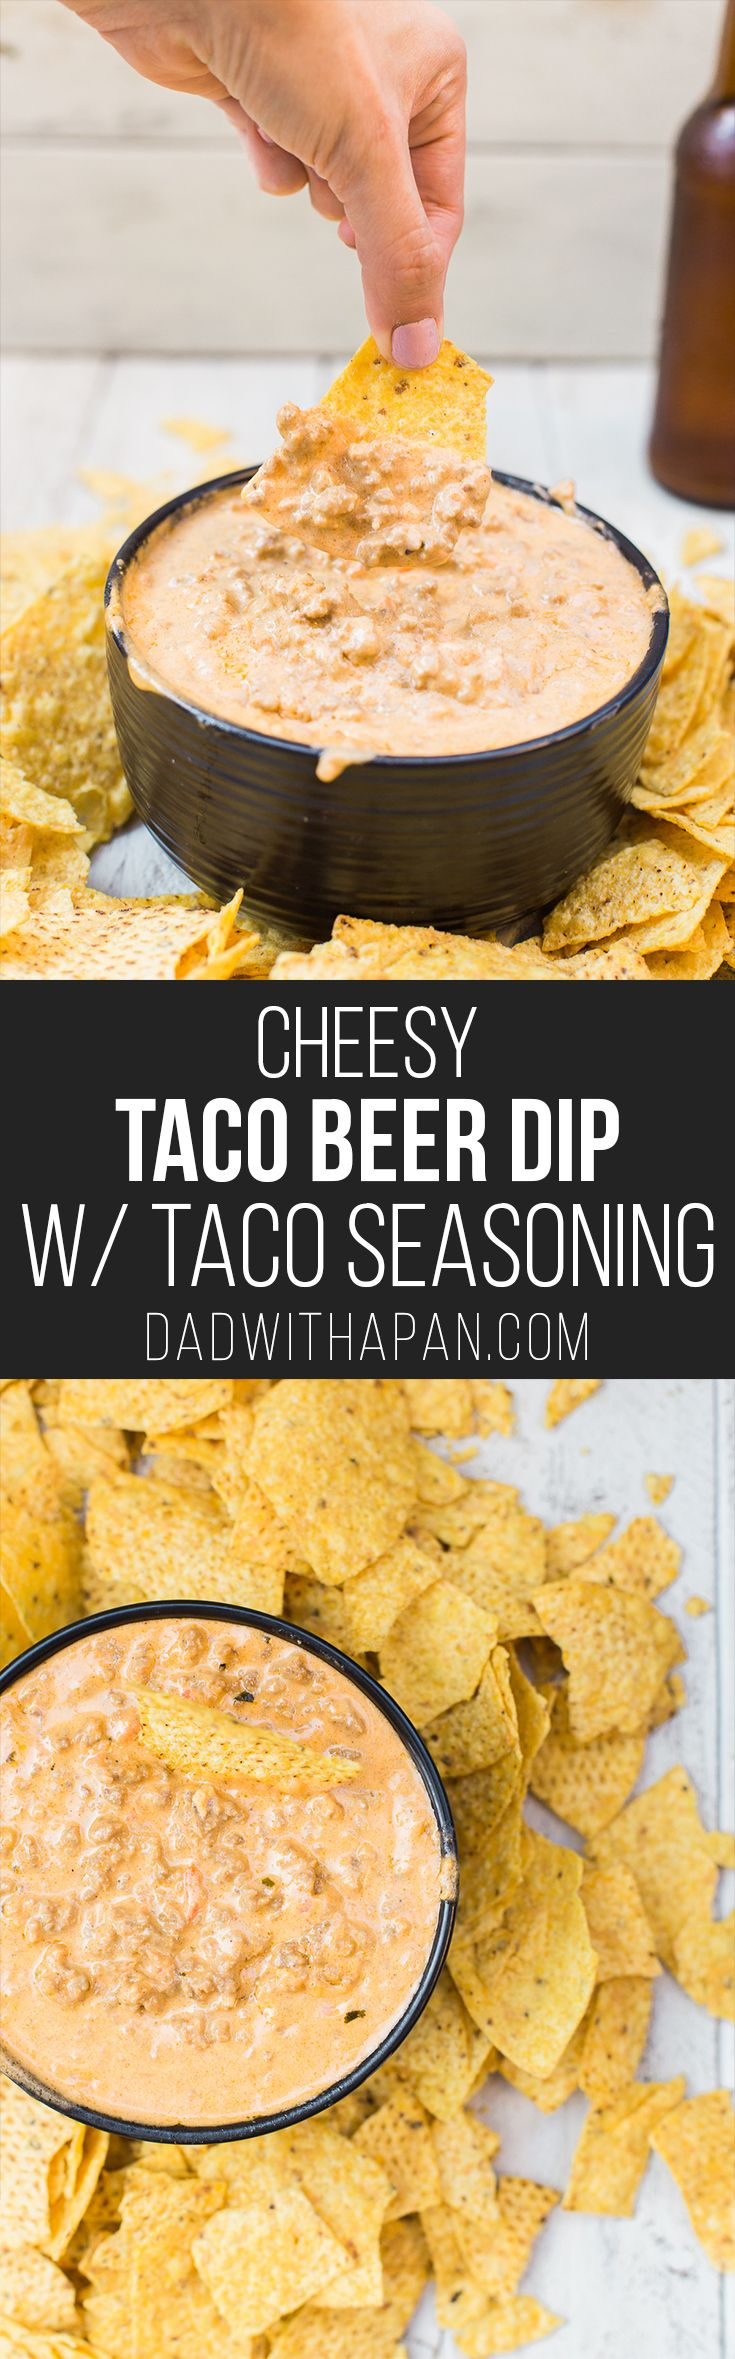 Our Appalachian Brewing Co. Water Gap Wheat would work perfect for this dip! Cheesy Taco Beer Dip with a Taco Seasoning Recipe from scratch!